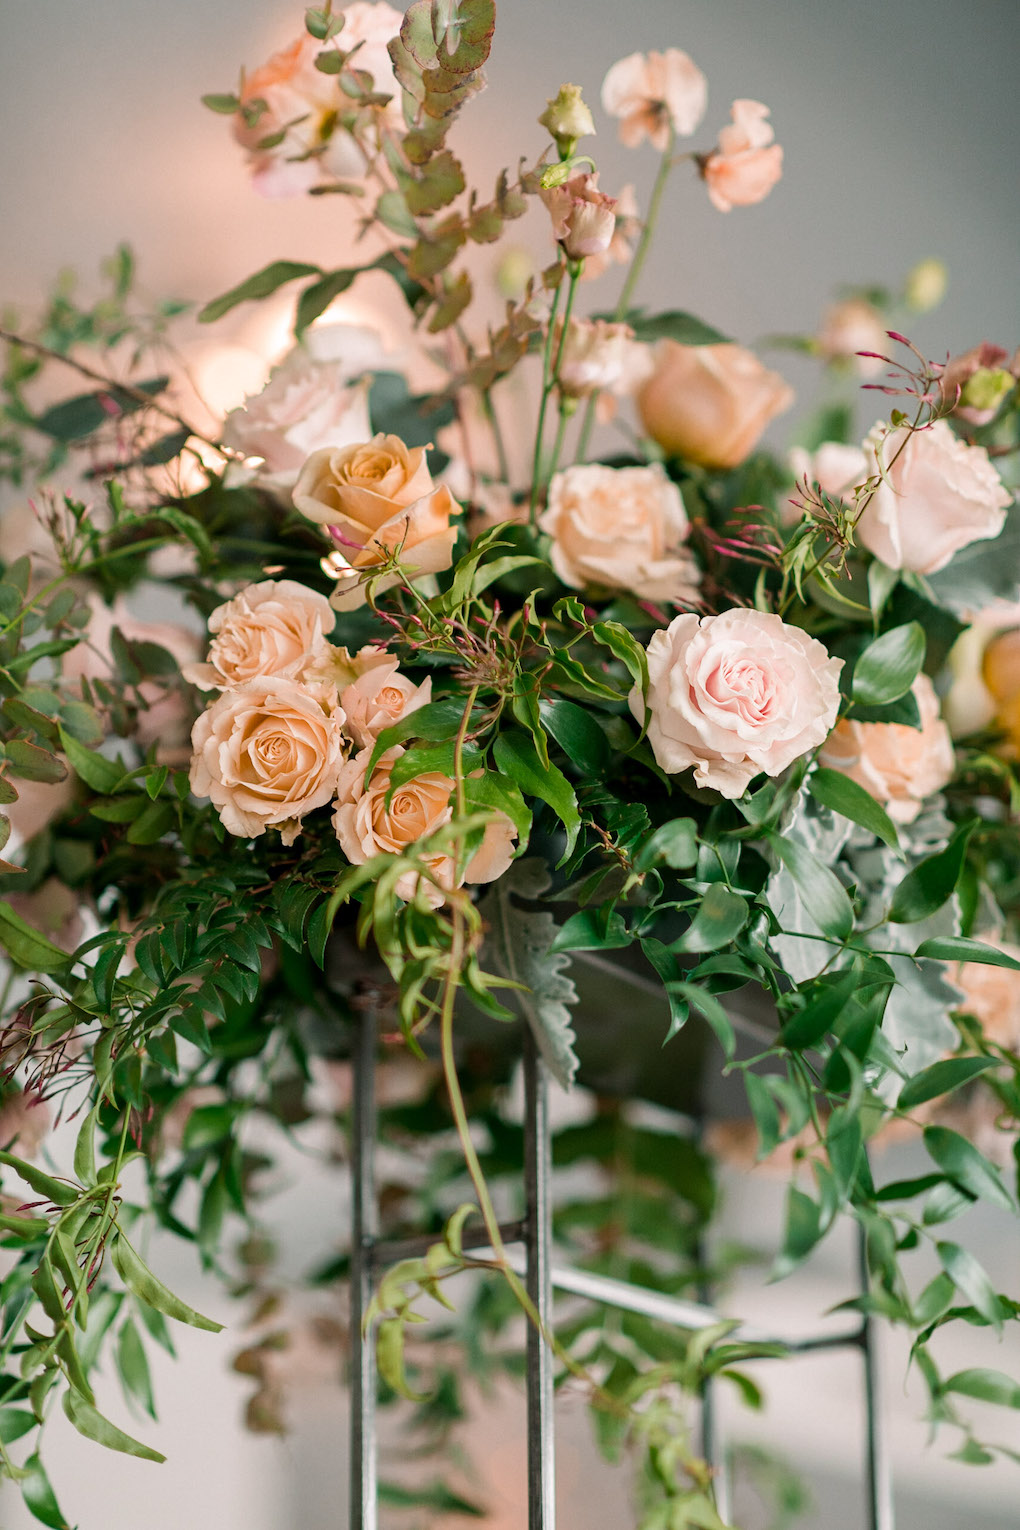 Peach and pink floral tones: Soft and Subtle Palettes of Spring Blossoms | Editorial Shoot at The Renaissance Pittsburgh by Exhale Events. See more inspiration at exhale-events.com!